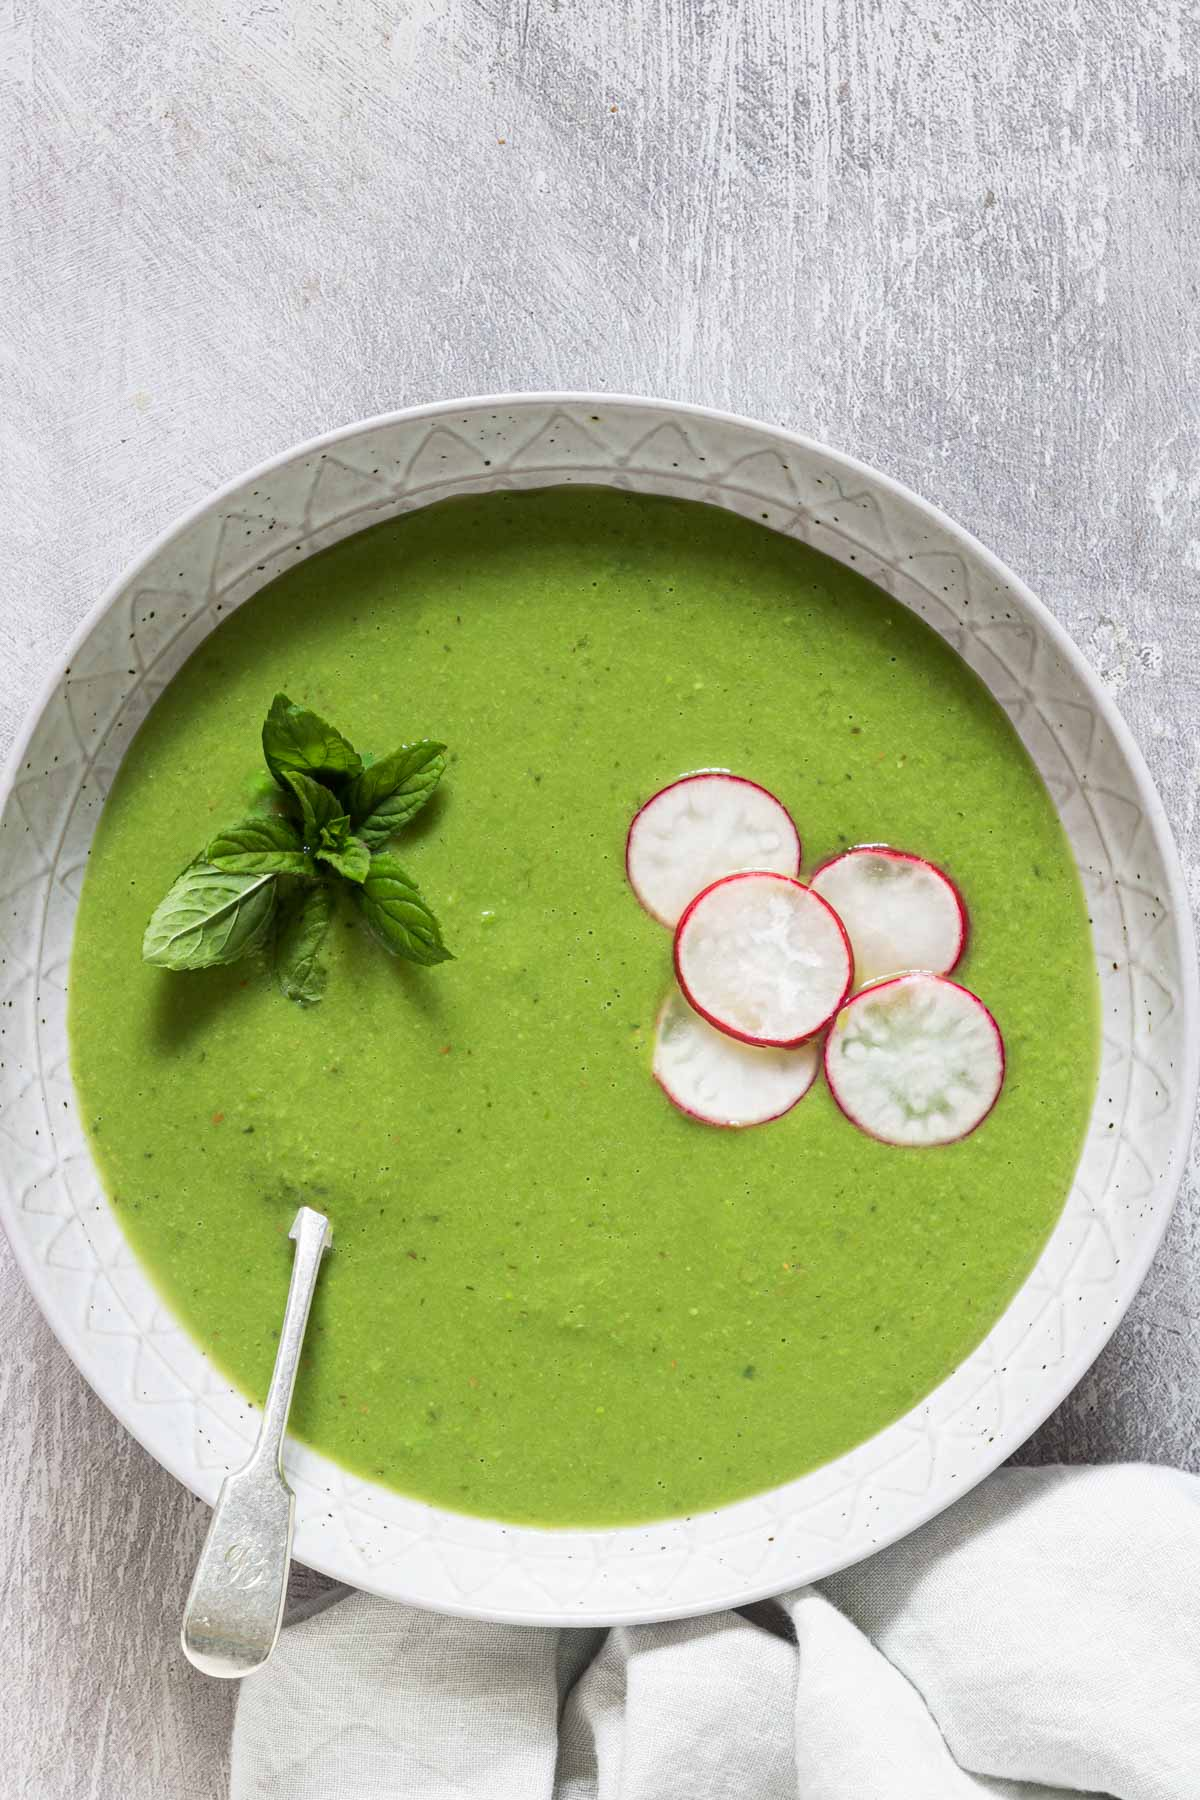 top down view of the finished pea soup served in a bowl and garnished with sliced radishes and mint